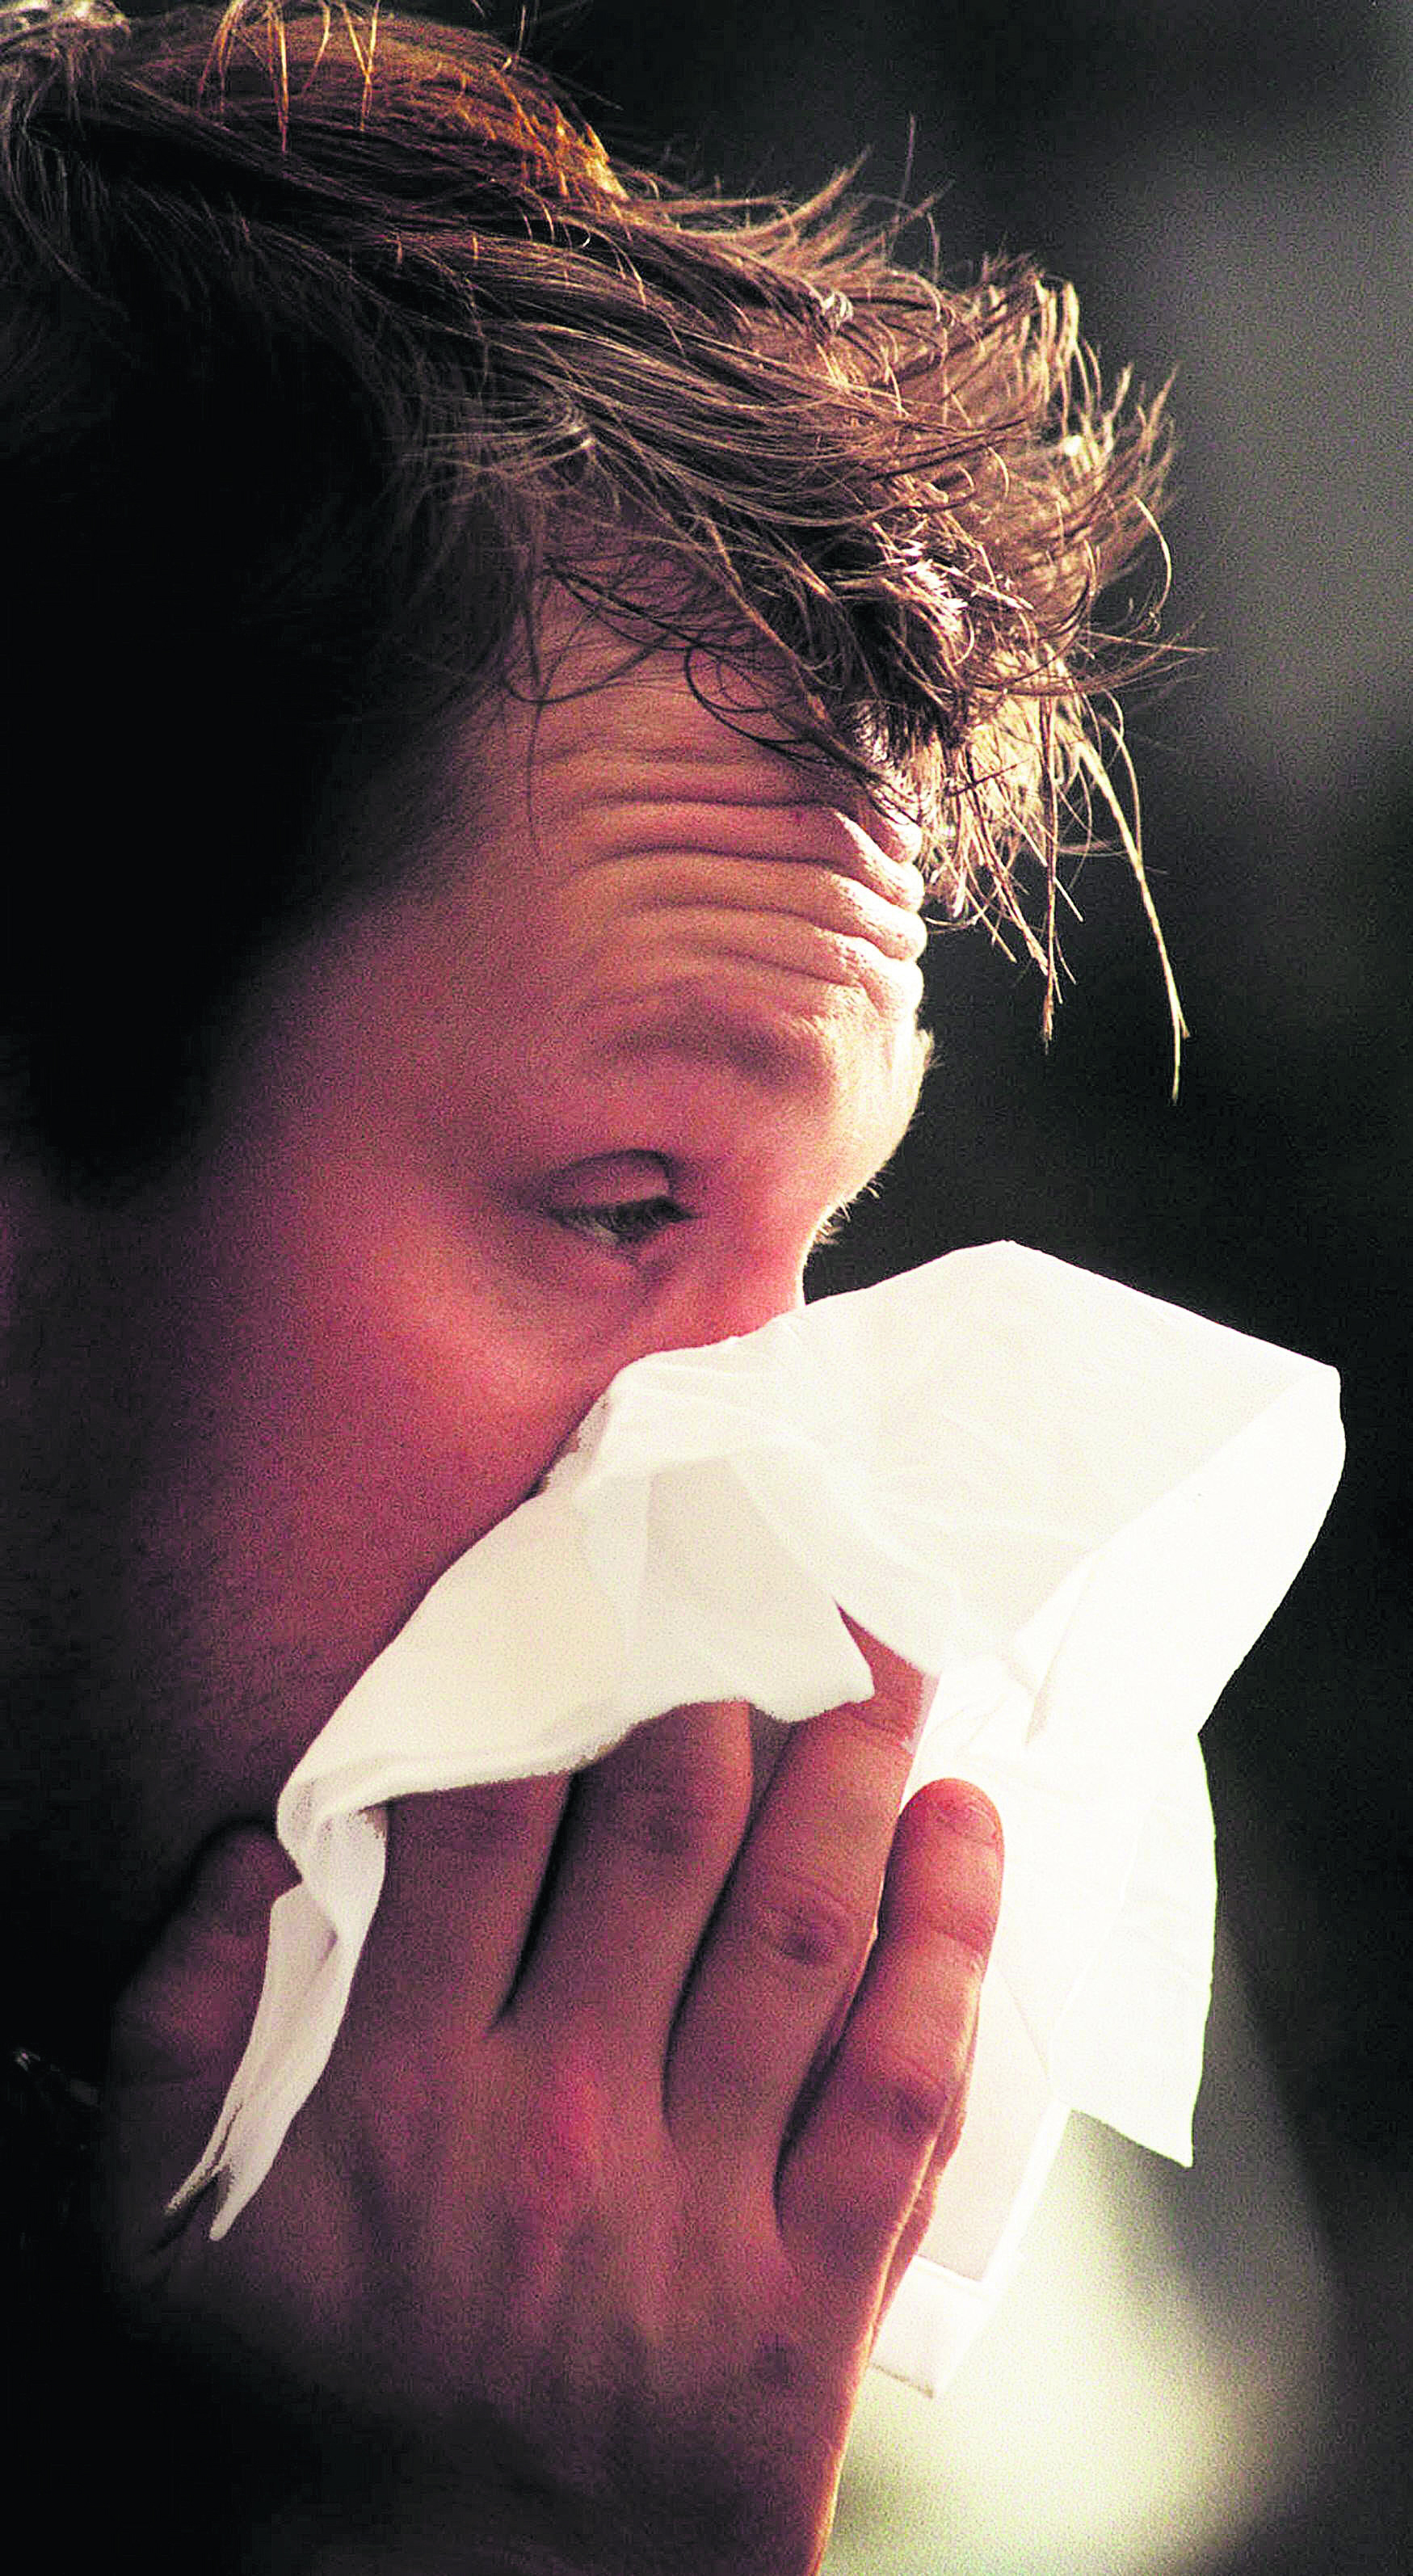 Are you sympathetic towards people with coughs and colds?